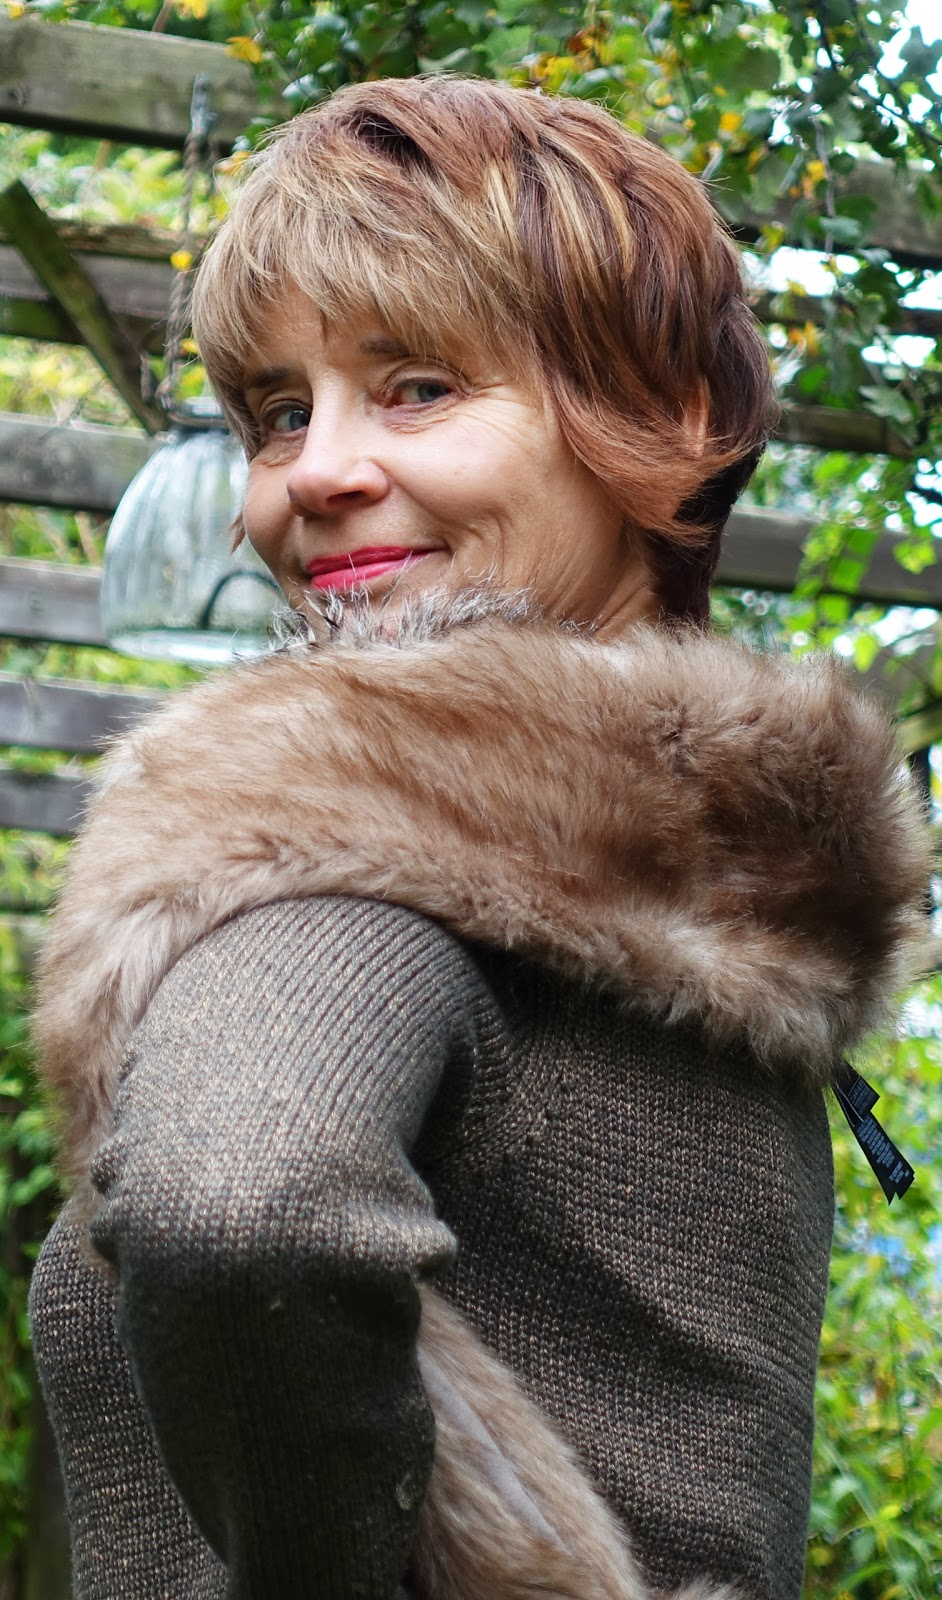 Imageshowing Gail Hanlon from over-40s-blog-Is-This-Mutton in thrifted corduroy coat and vintage wardrobe items including a fur stole